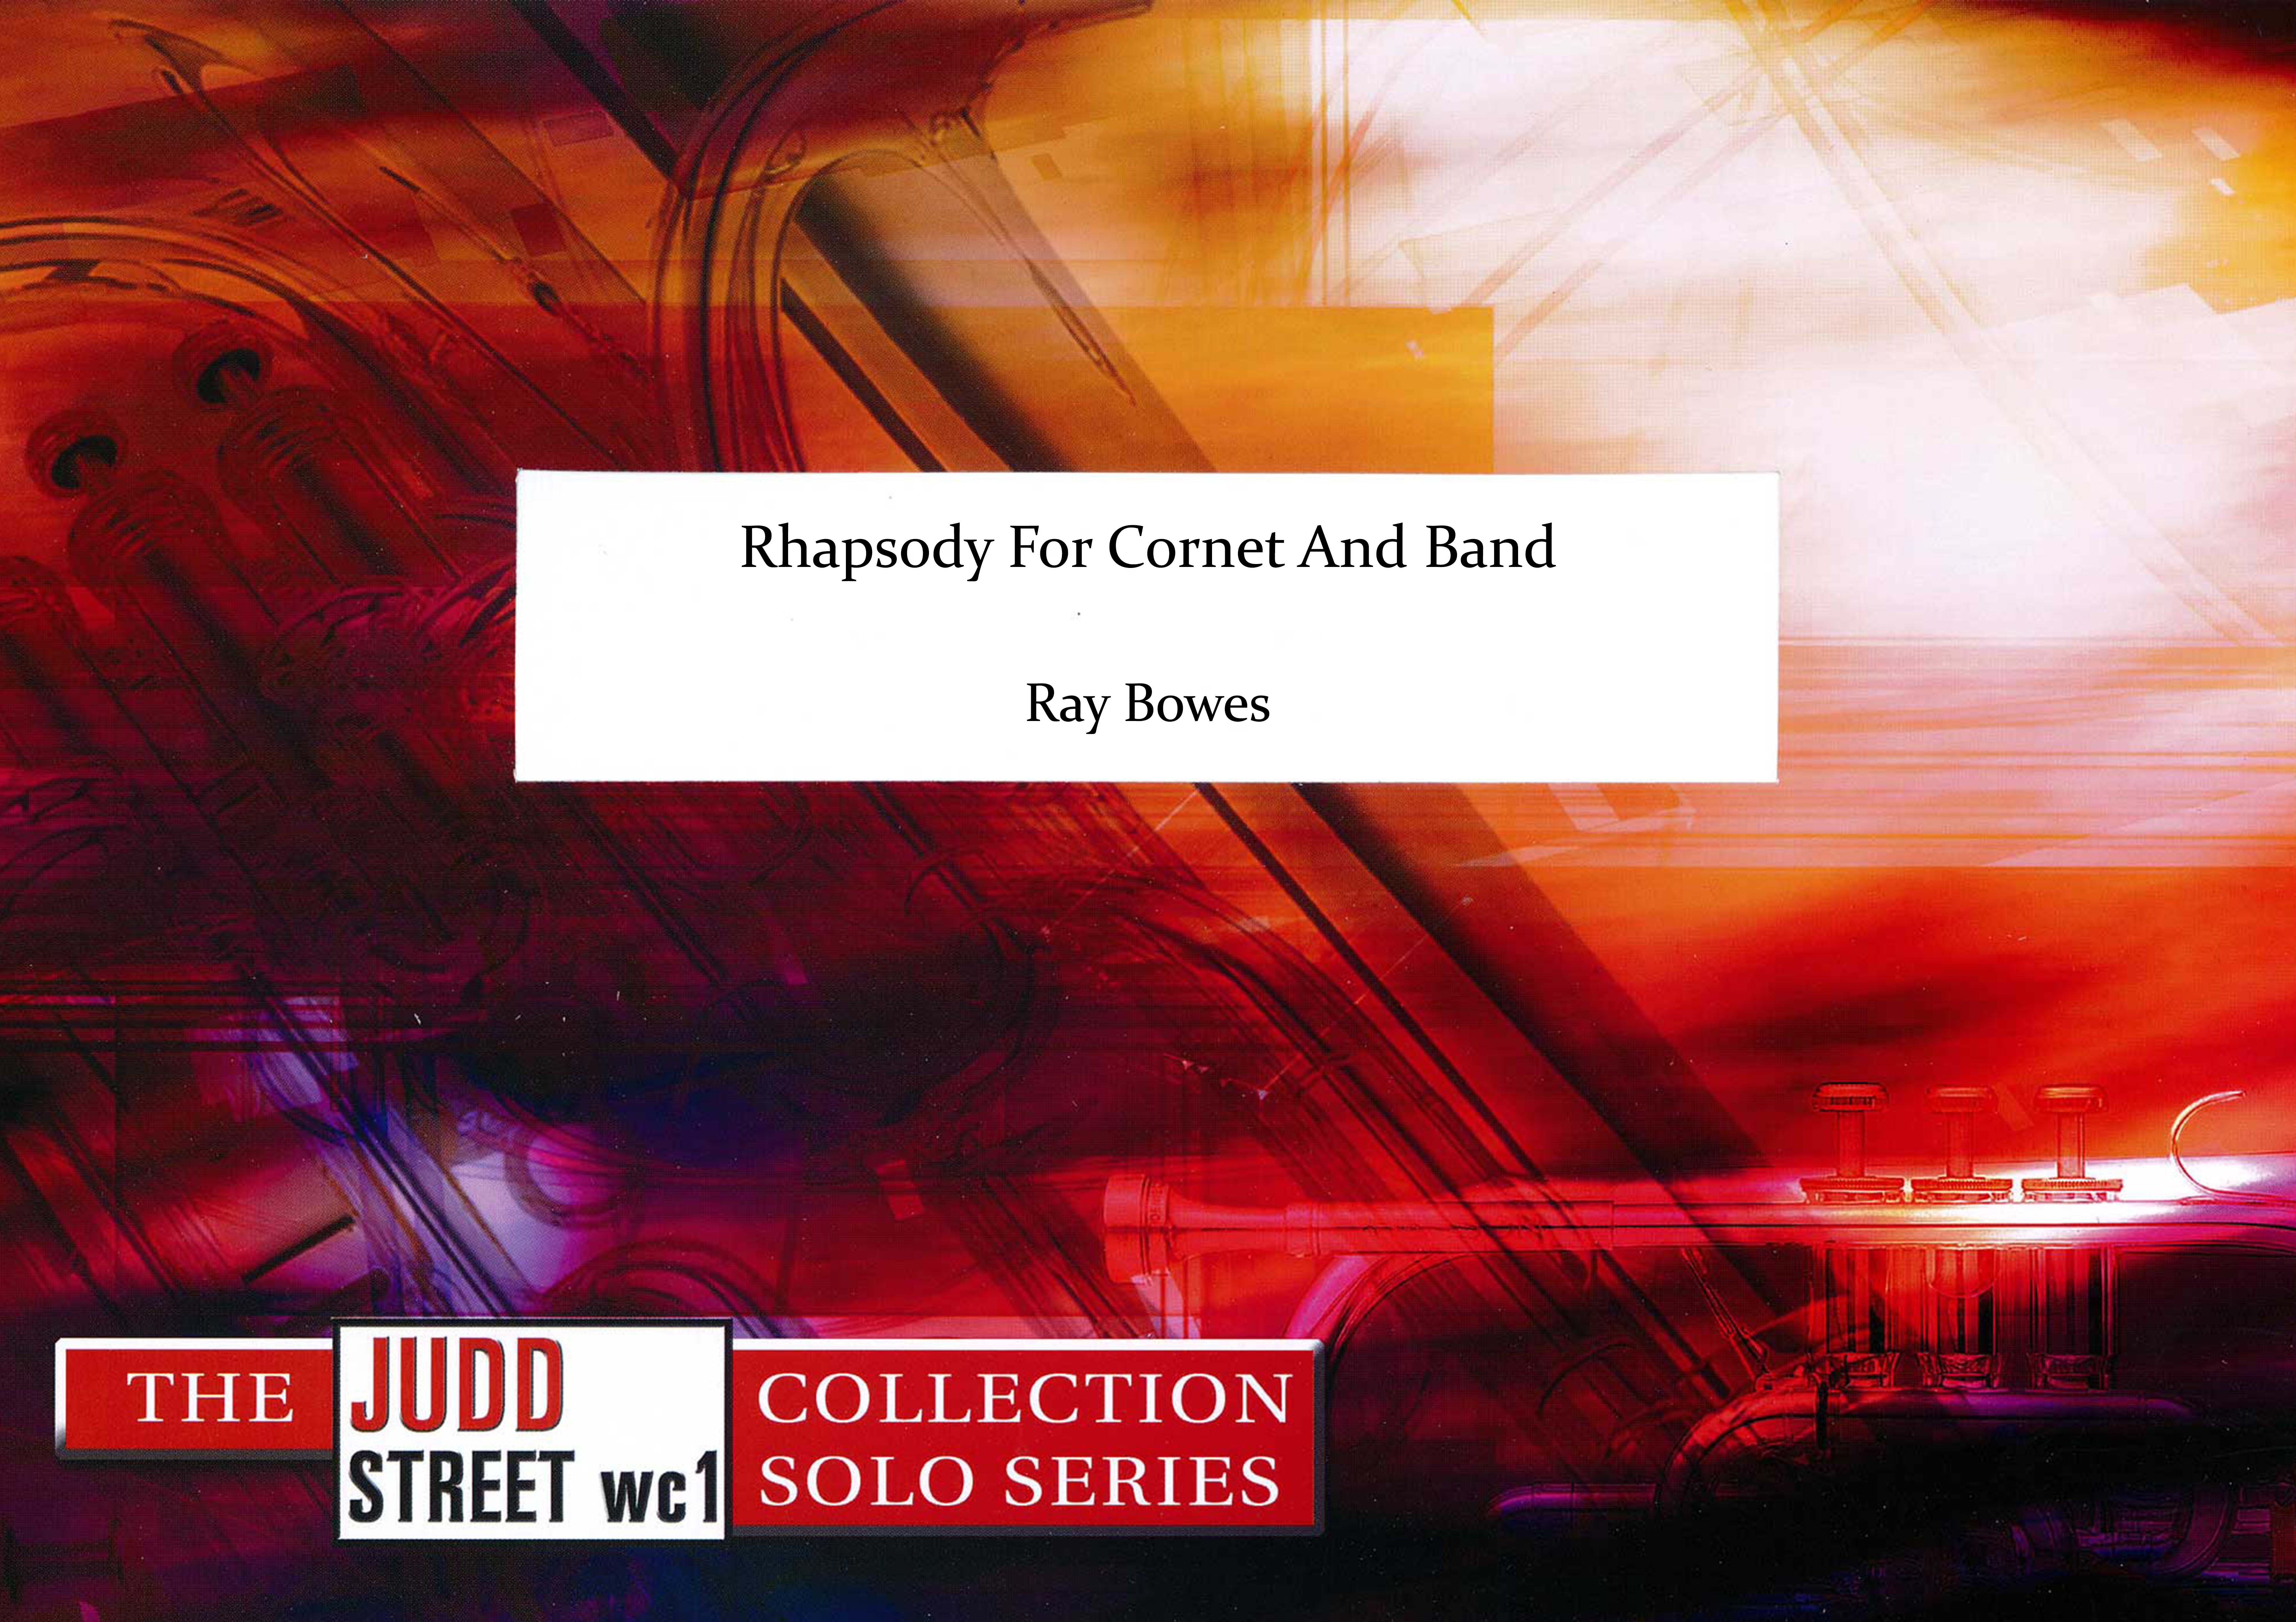 Rhapsody For Cornet And Band (Cornet Solo with Brass Band - Score only)